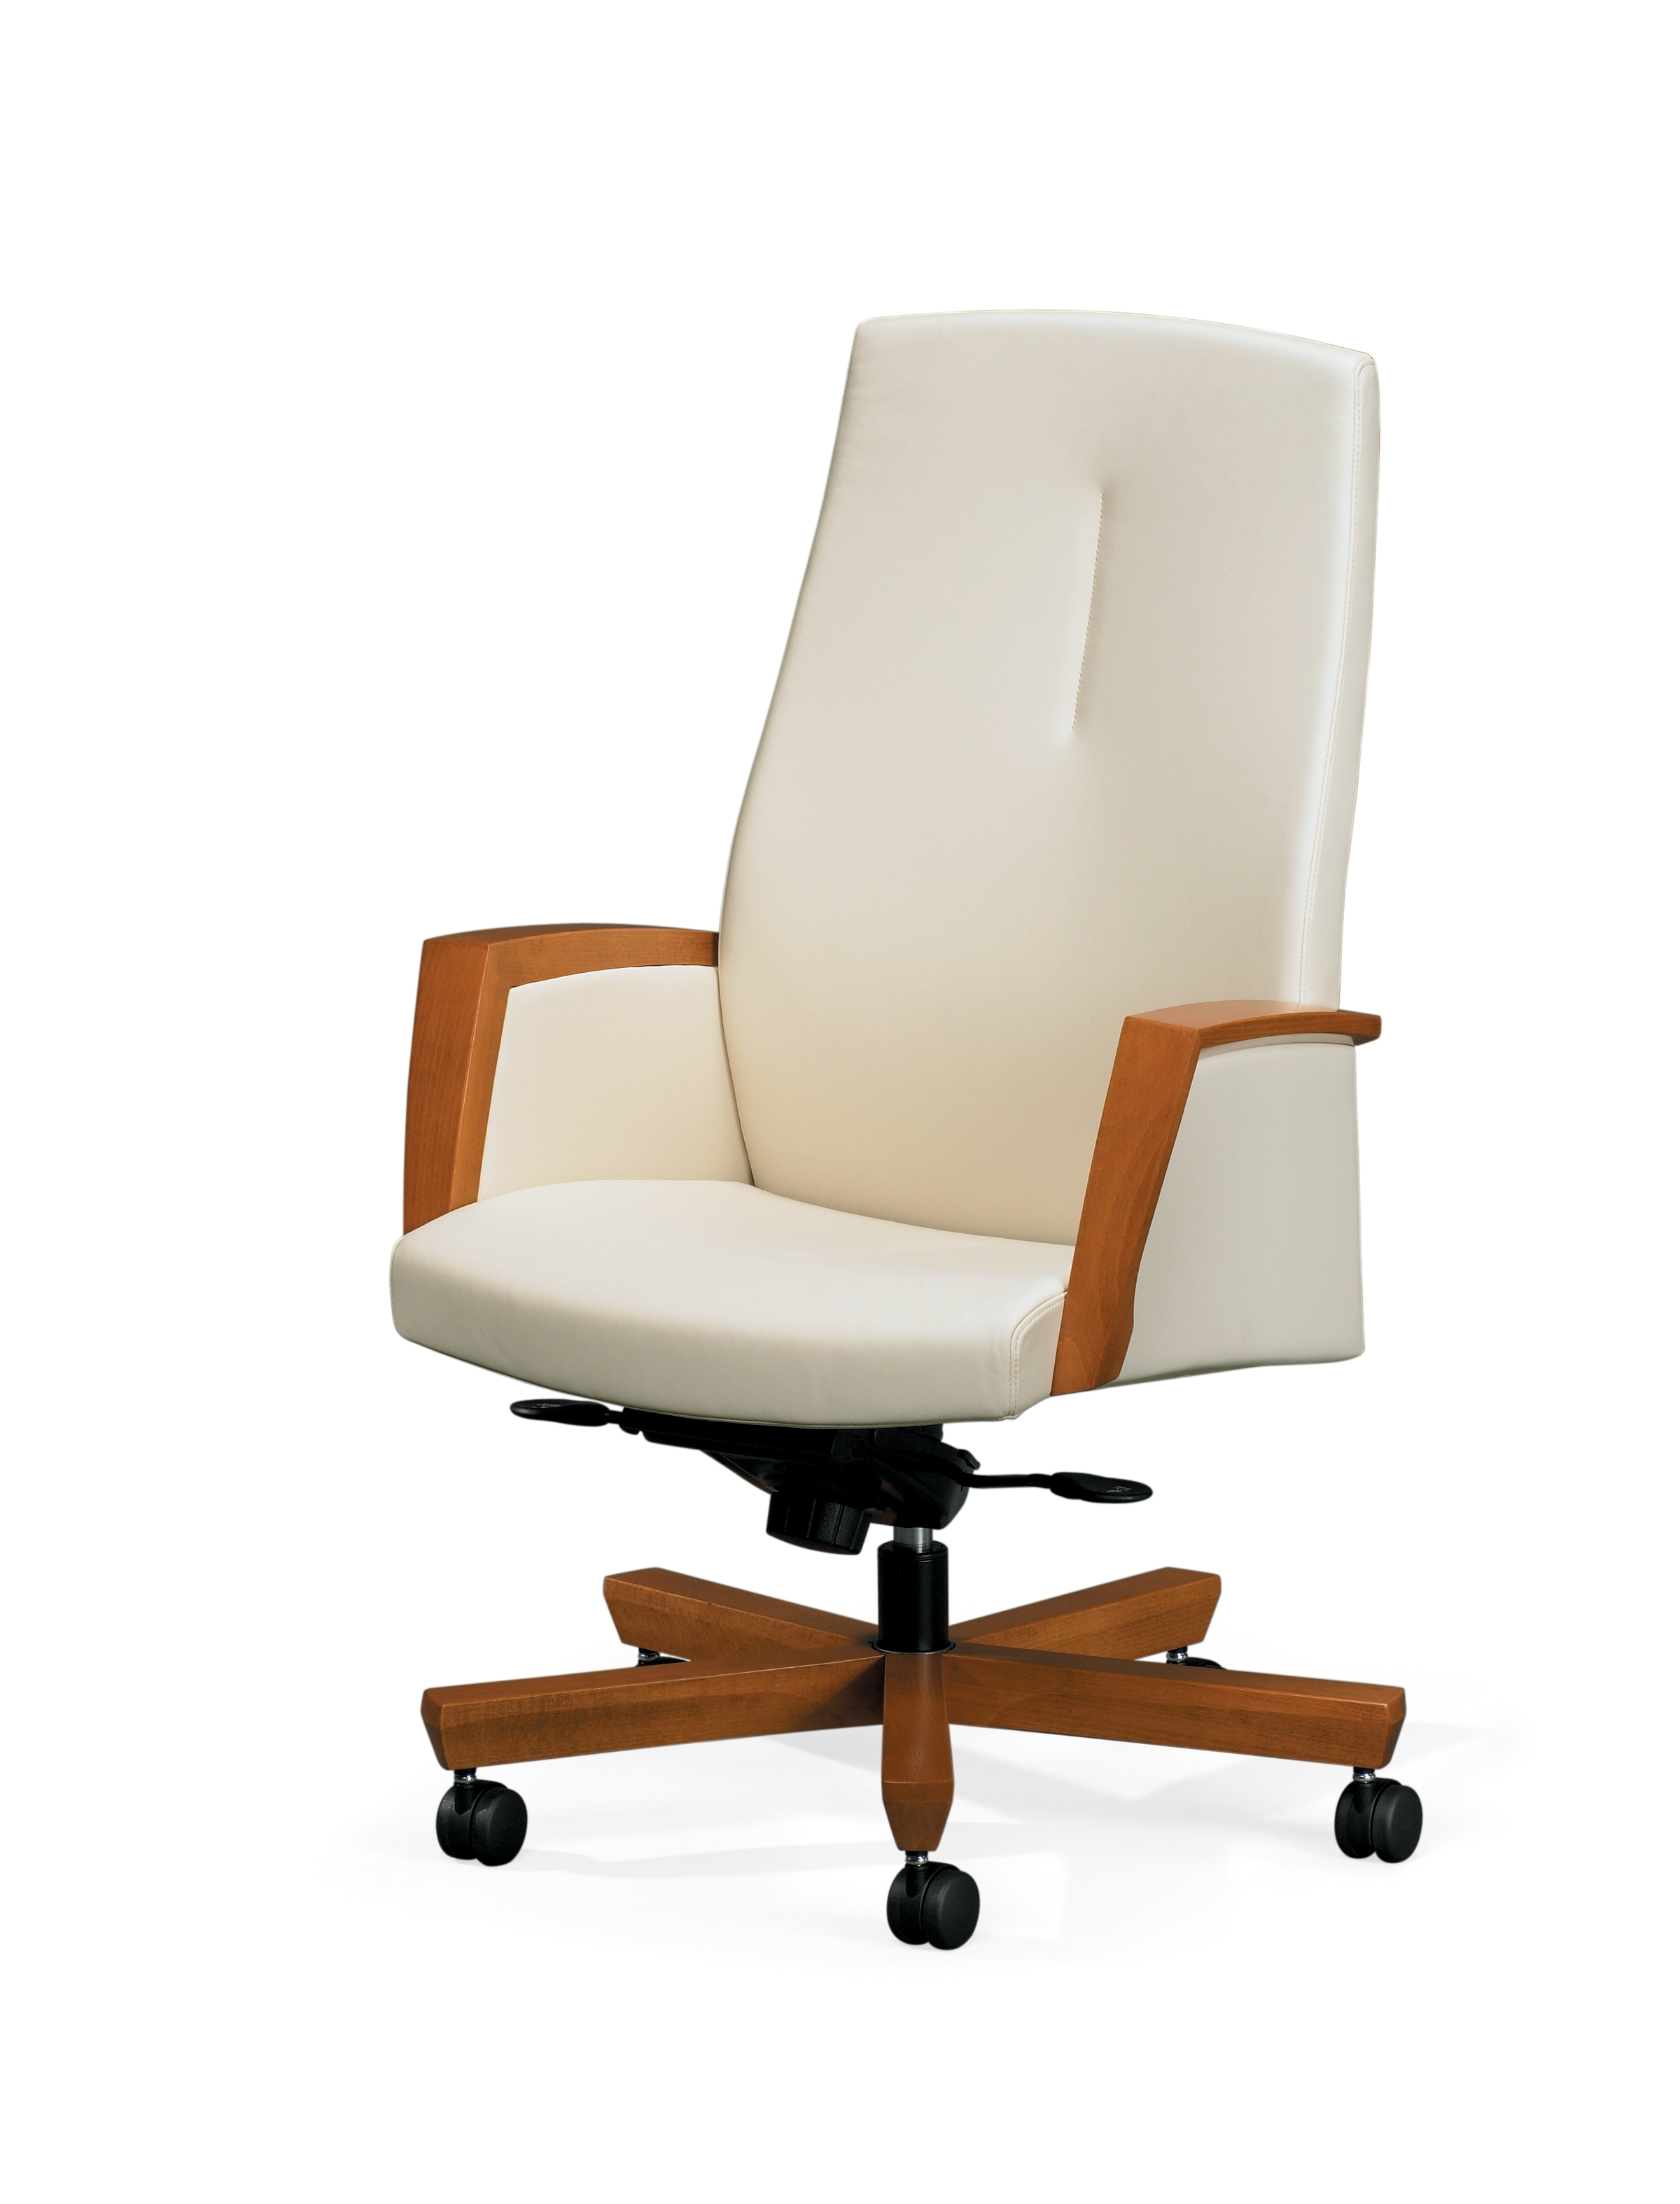 Executive Desk Chair Without Arms Throughout Preferred Paoli Diverge Office Chair – Contemporay And Transitional Seating (View 17 of 20)